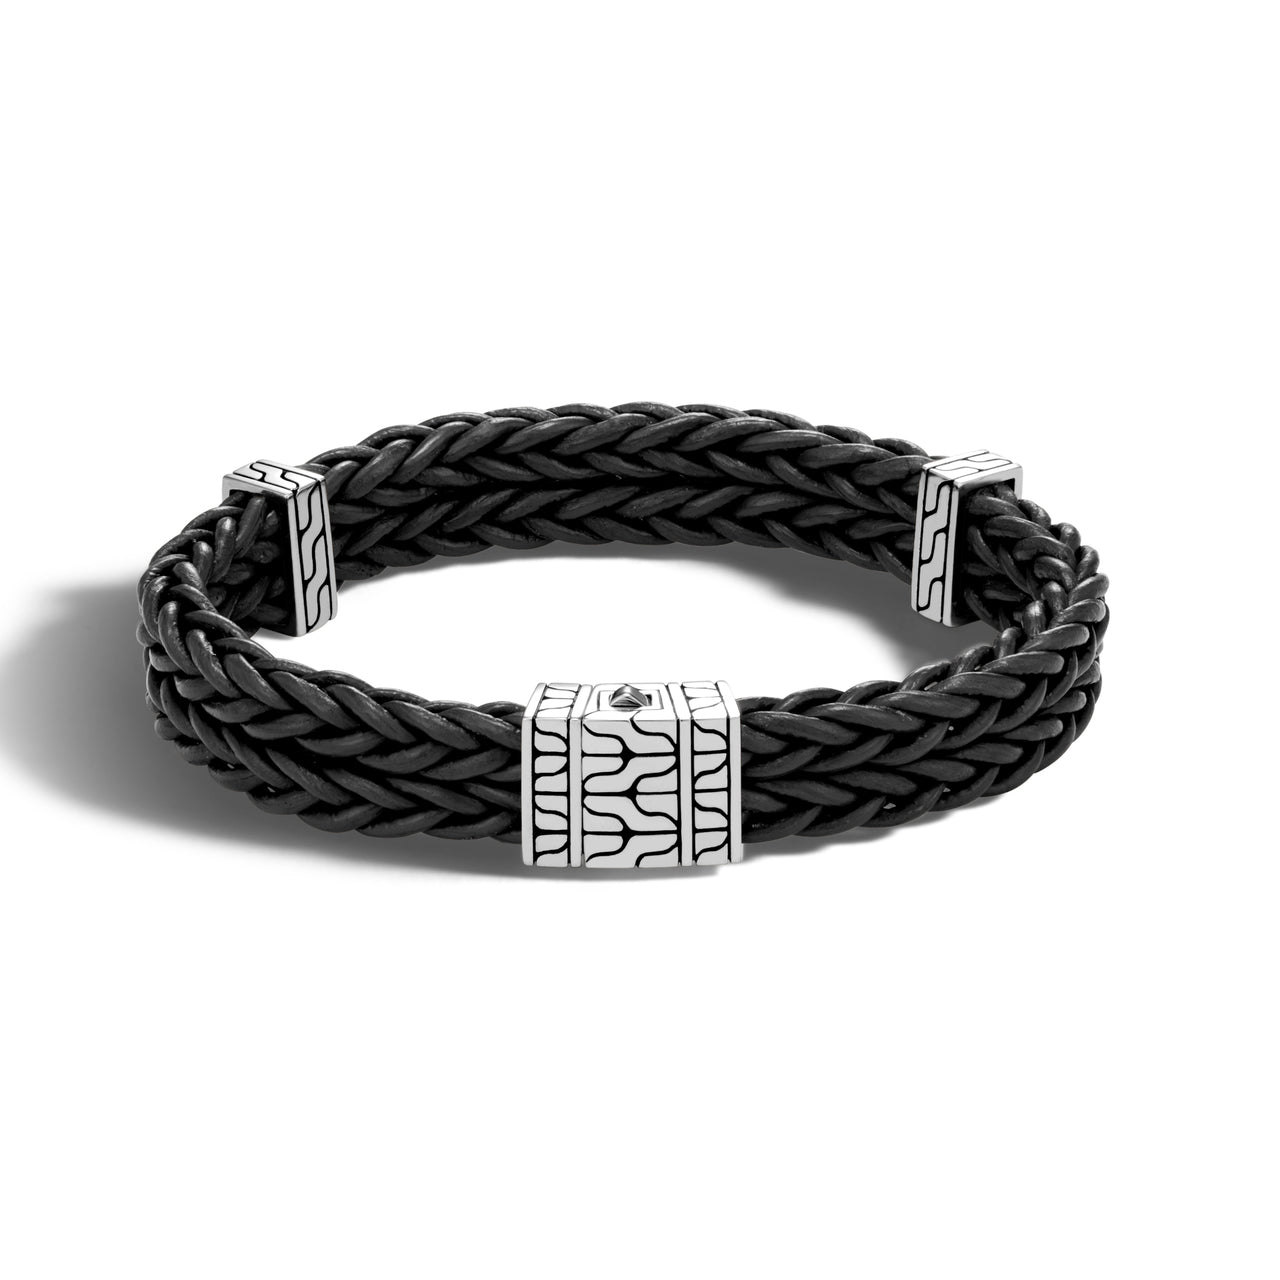 John Hardy Men's Heritage Limited Edition Classic Chain Double Chain Black Leather Bracelet